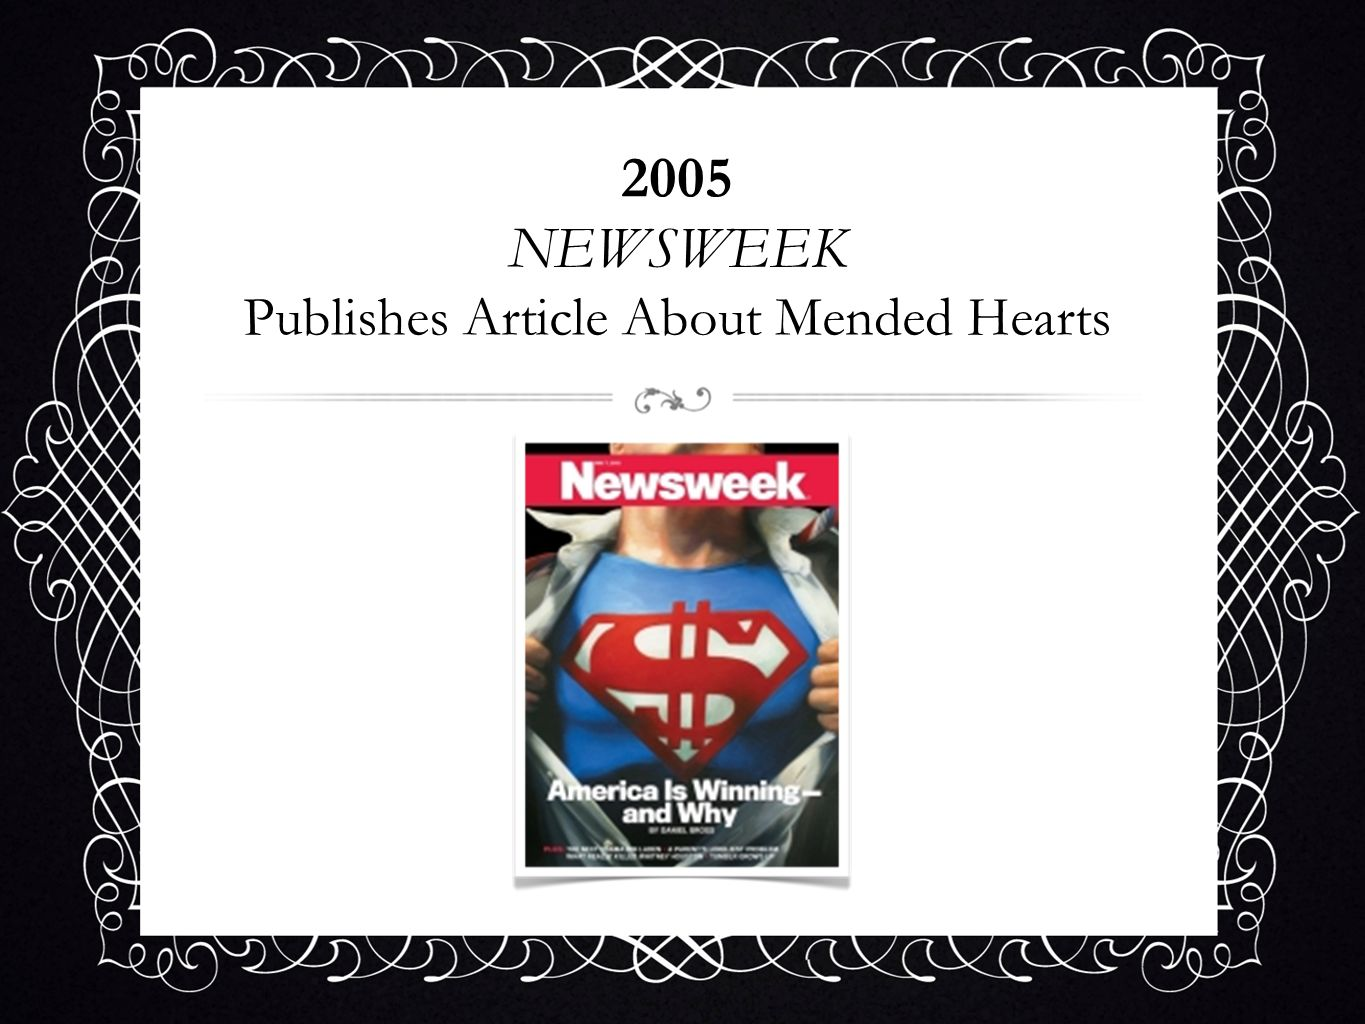 2005 NEWSWEEK Publishes Article About Mended Hearts